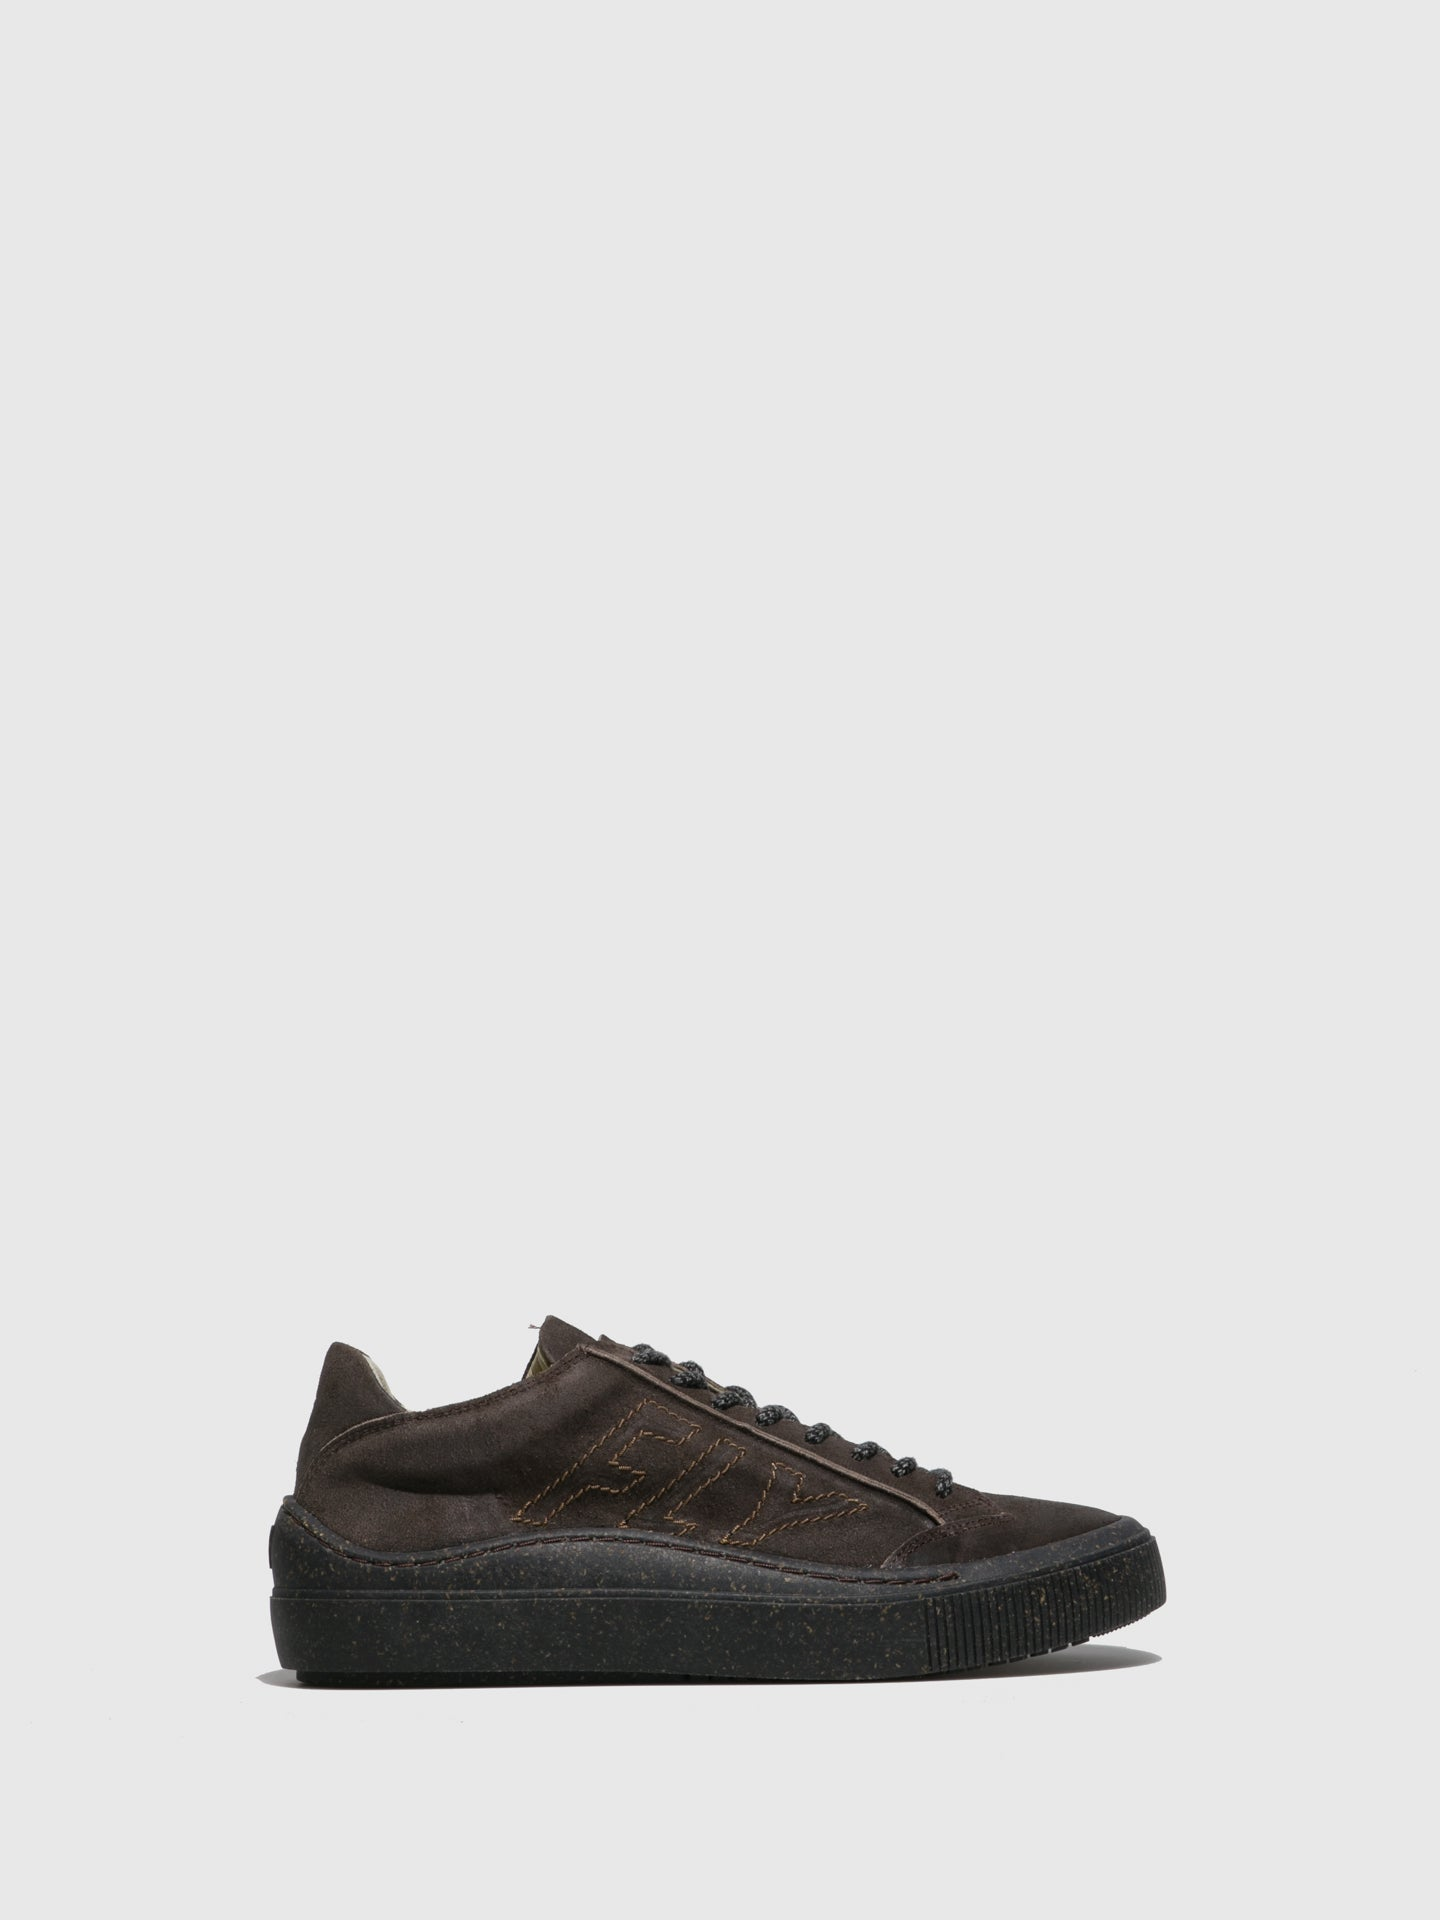 Fly London Lace-up Trainers SEPA355FLY SUEDEVEGETALBEAT ASFALT